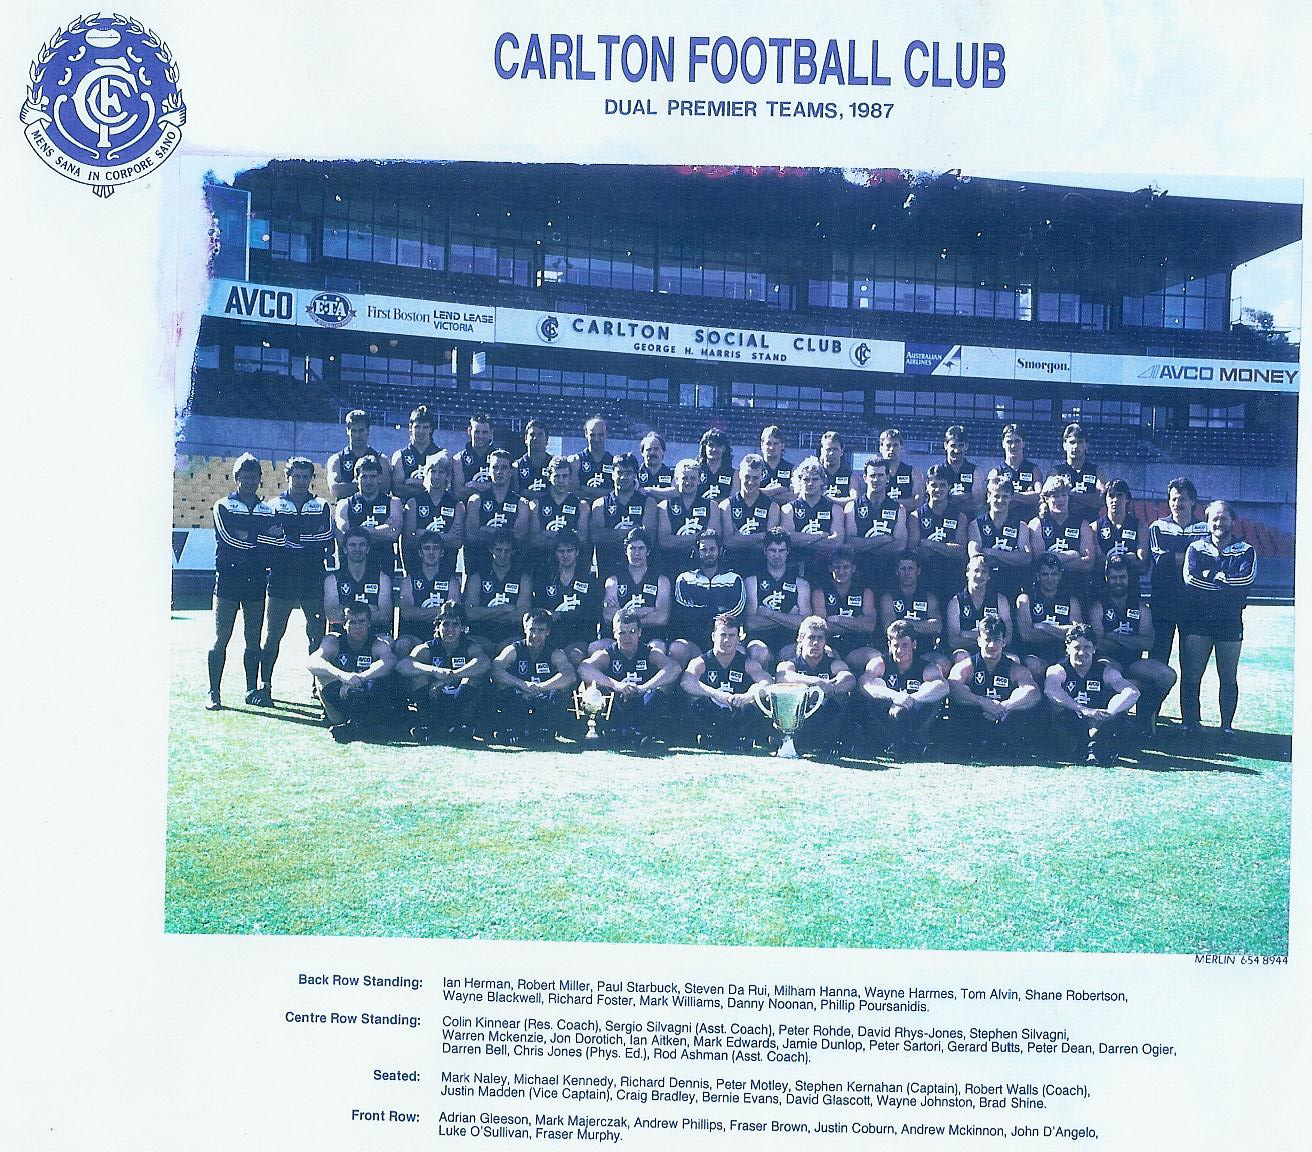 1982 Carlton Football Club season